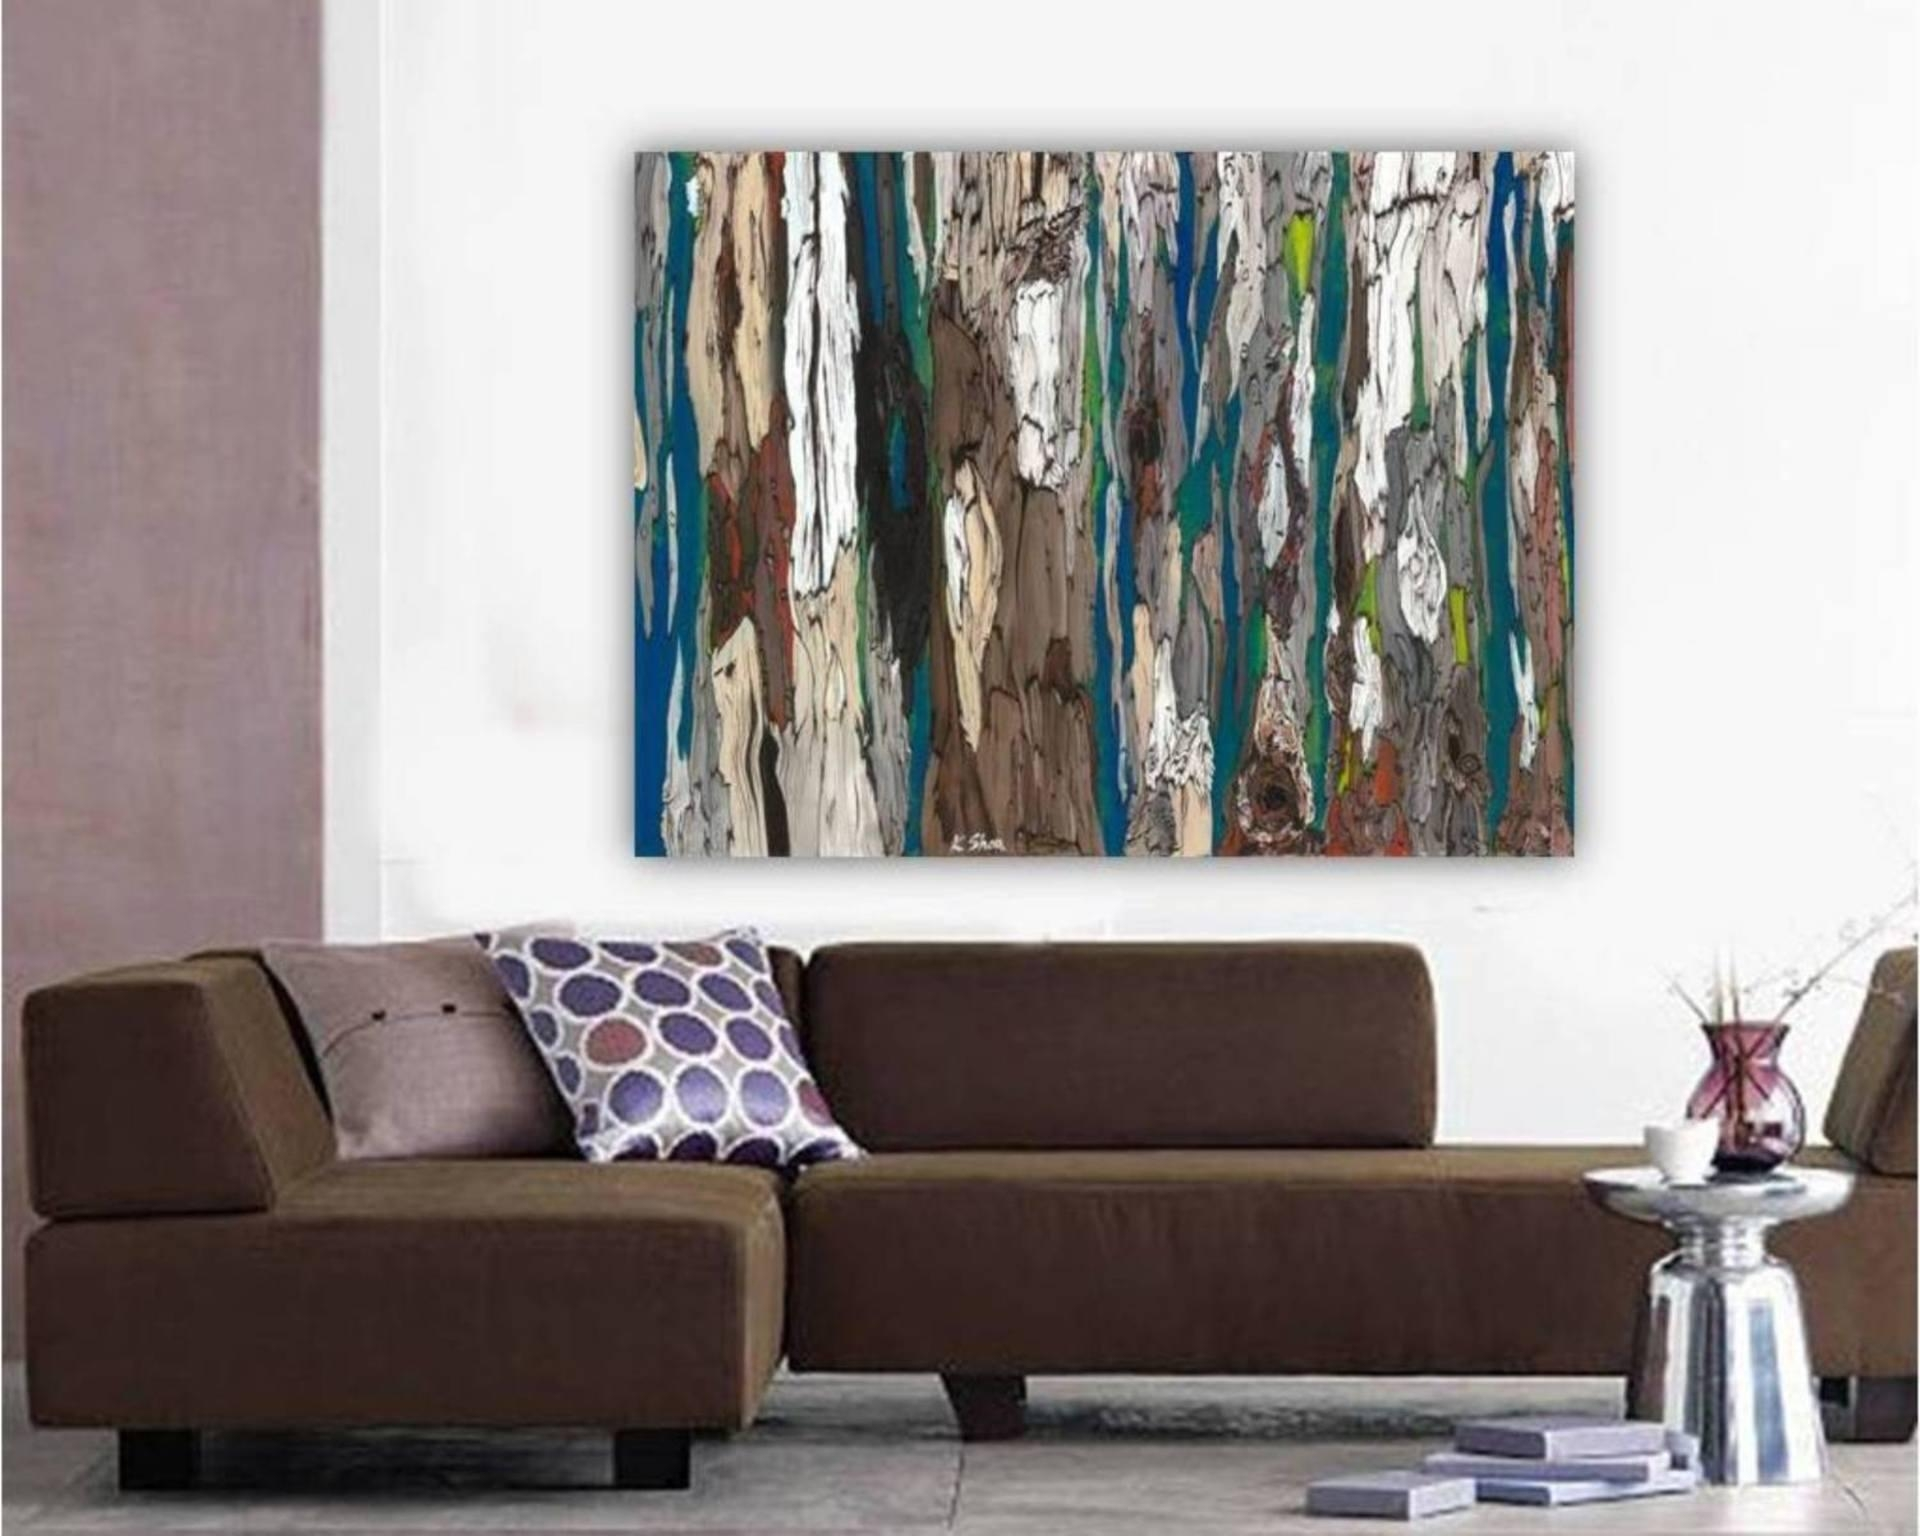 Wall Design: Abstract Wall Art Images (View 10 of 20)